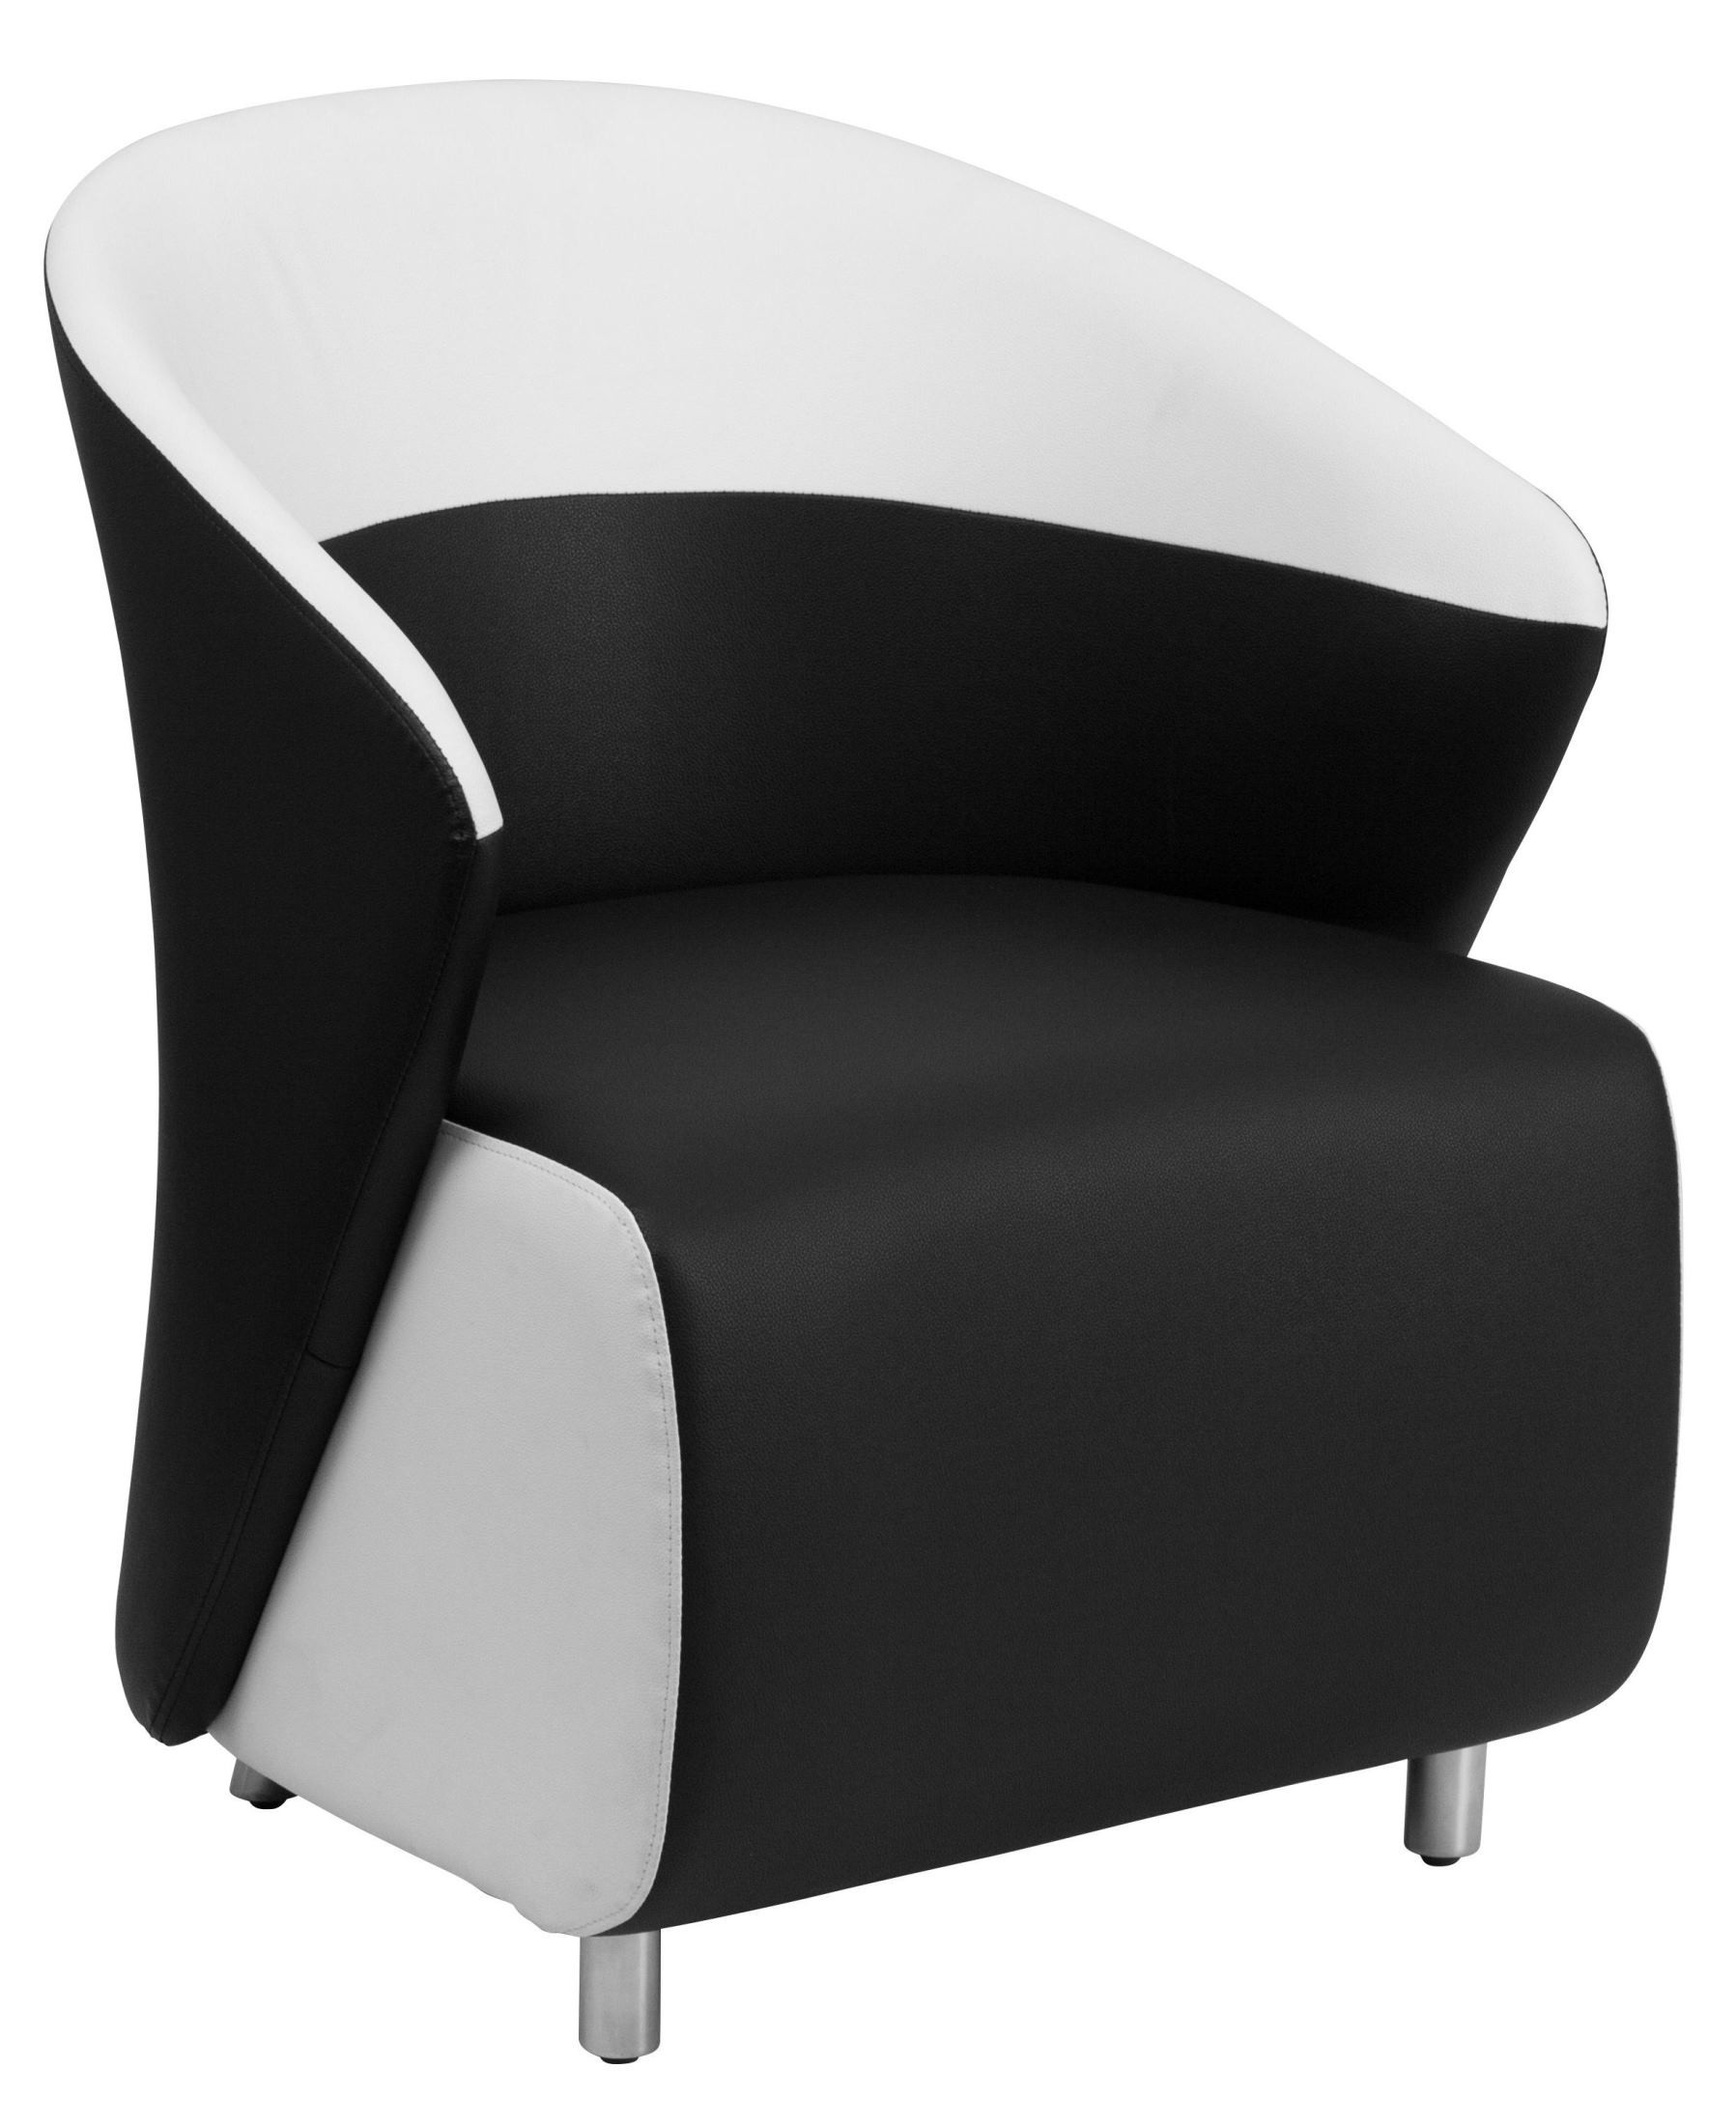 black leather reception chairs small recliner uk chair with white detailing from